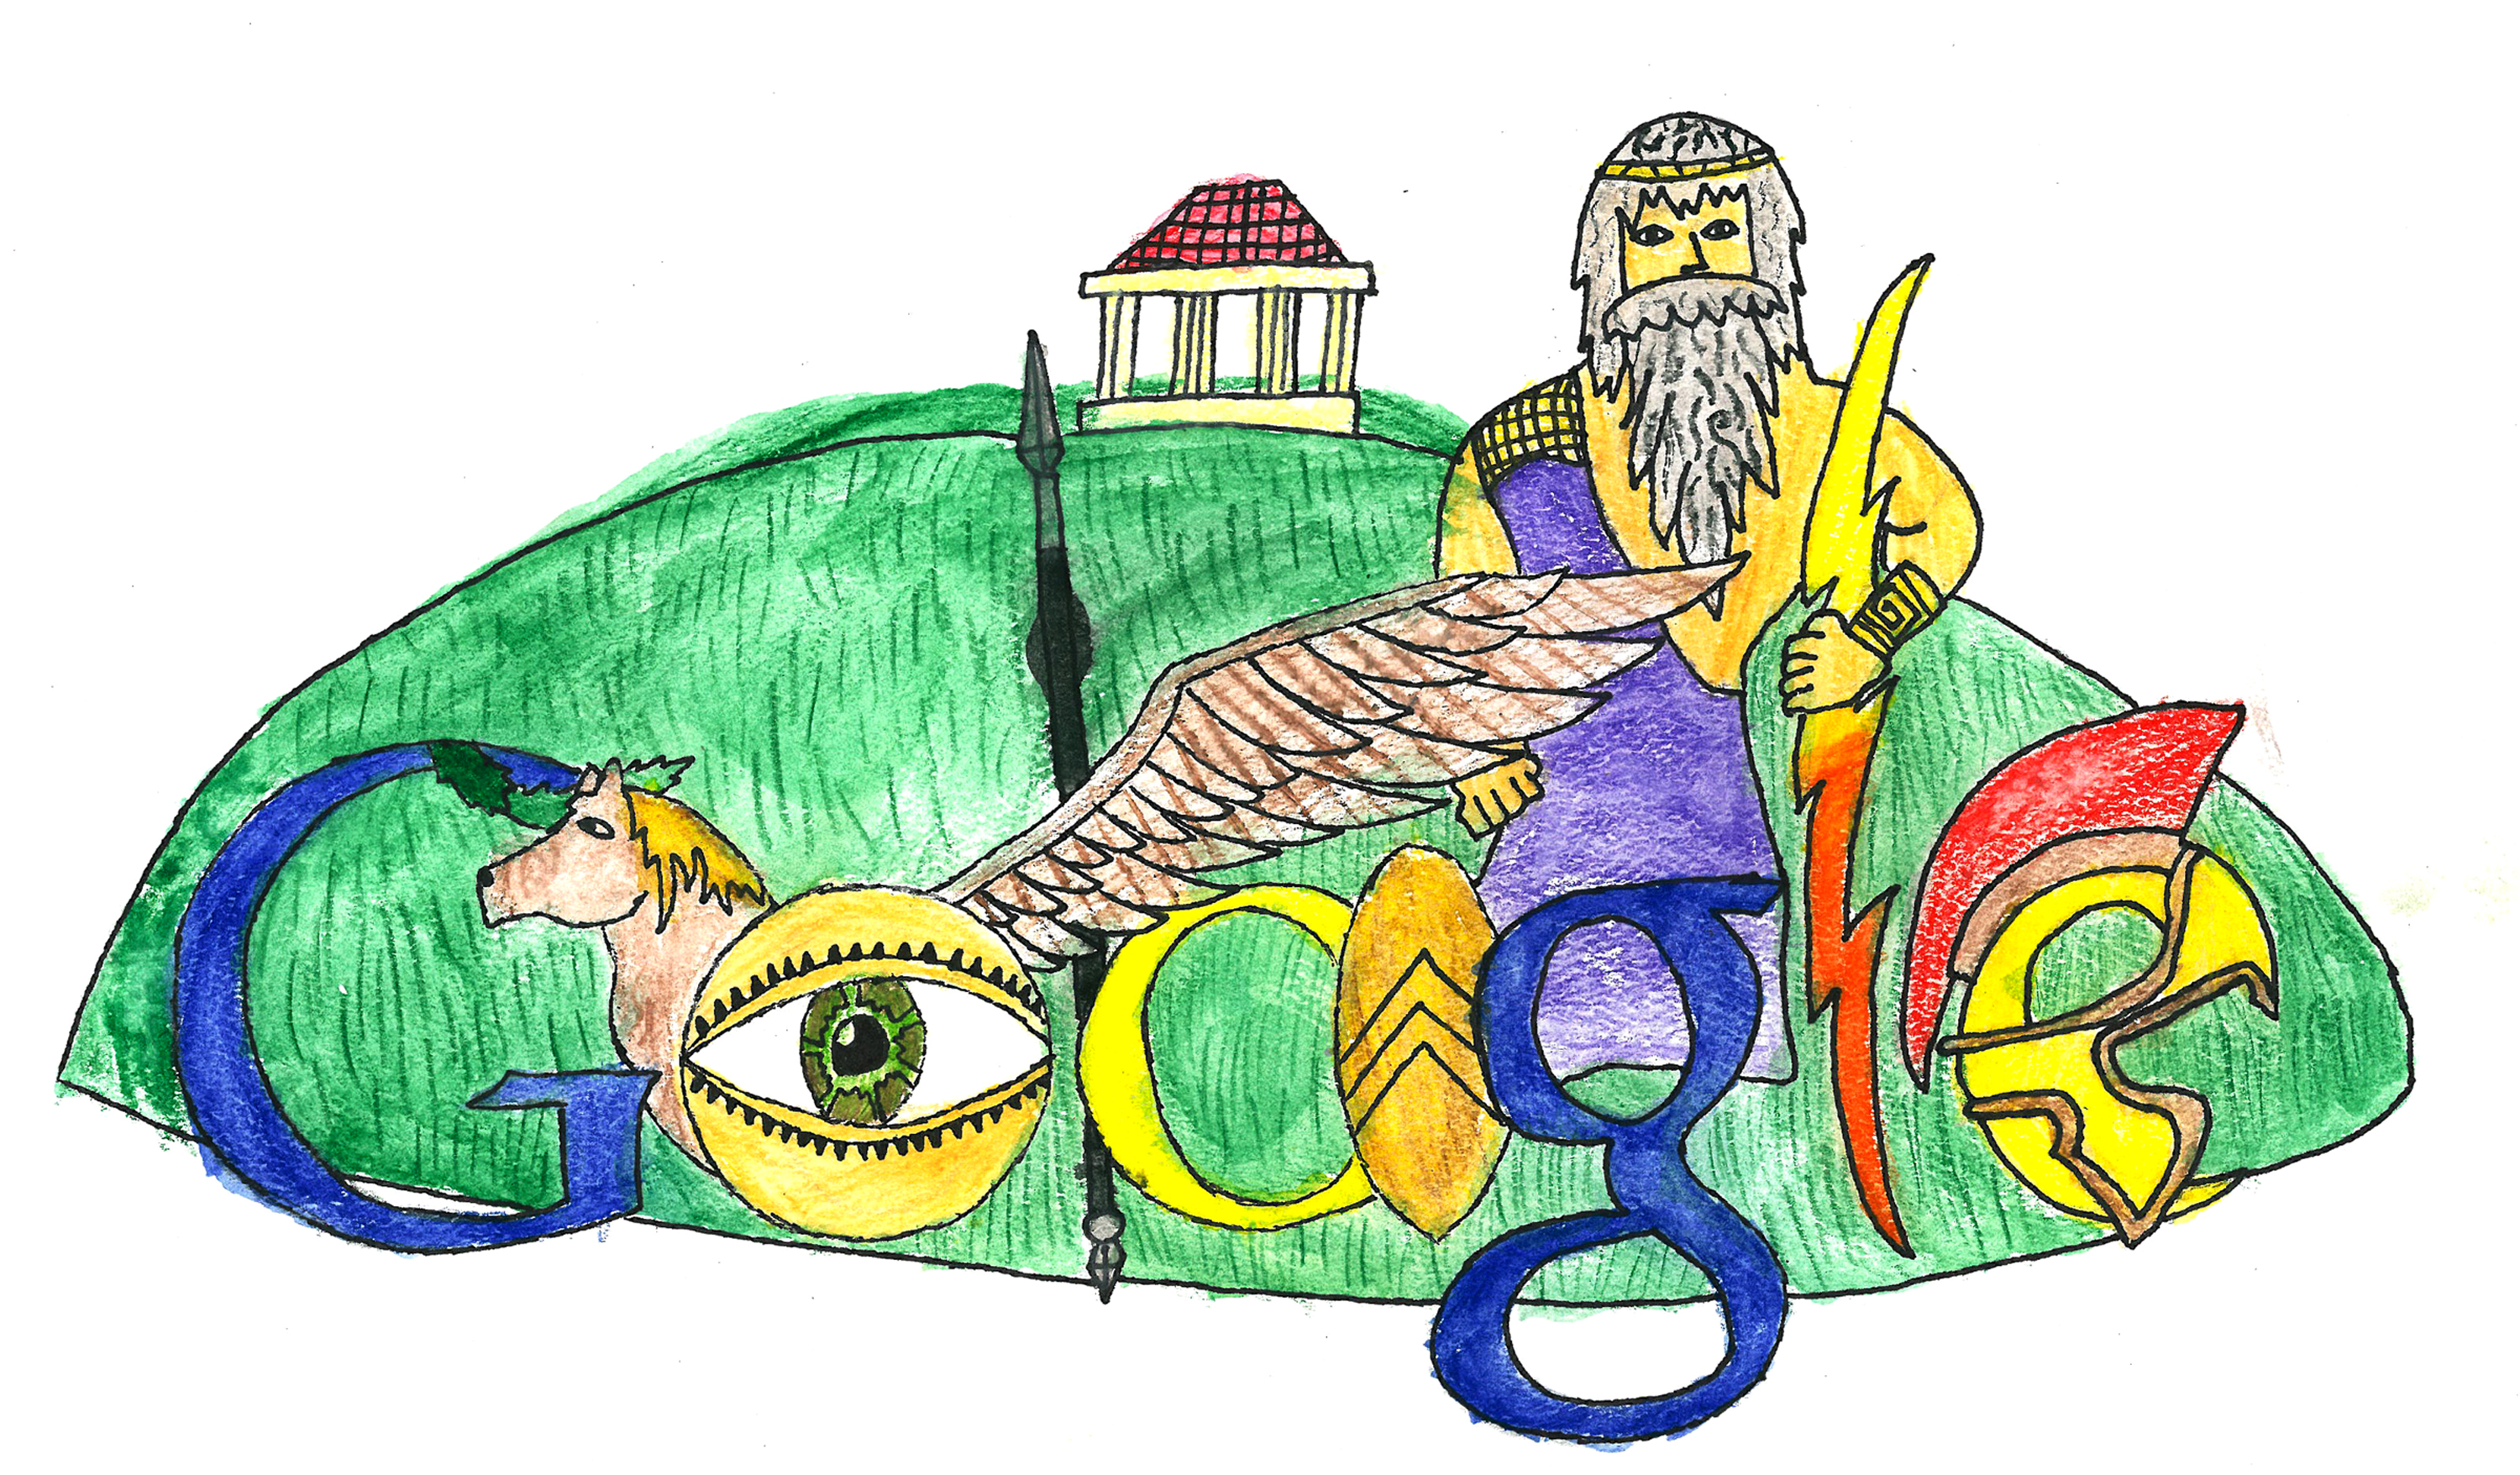 Google themes doodle -  Doodle For Google Is A National Contest Open To School Children In Grades K 12 It Challenges Students To Modify The Existing Search Engine Company S Logo